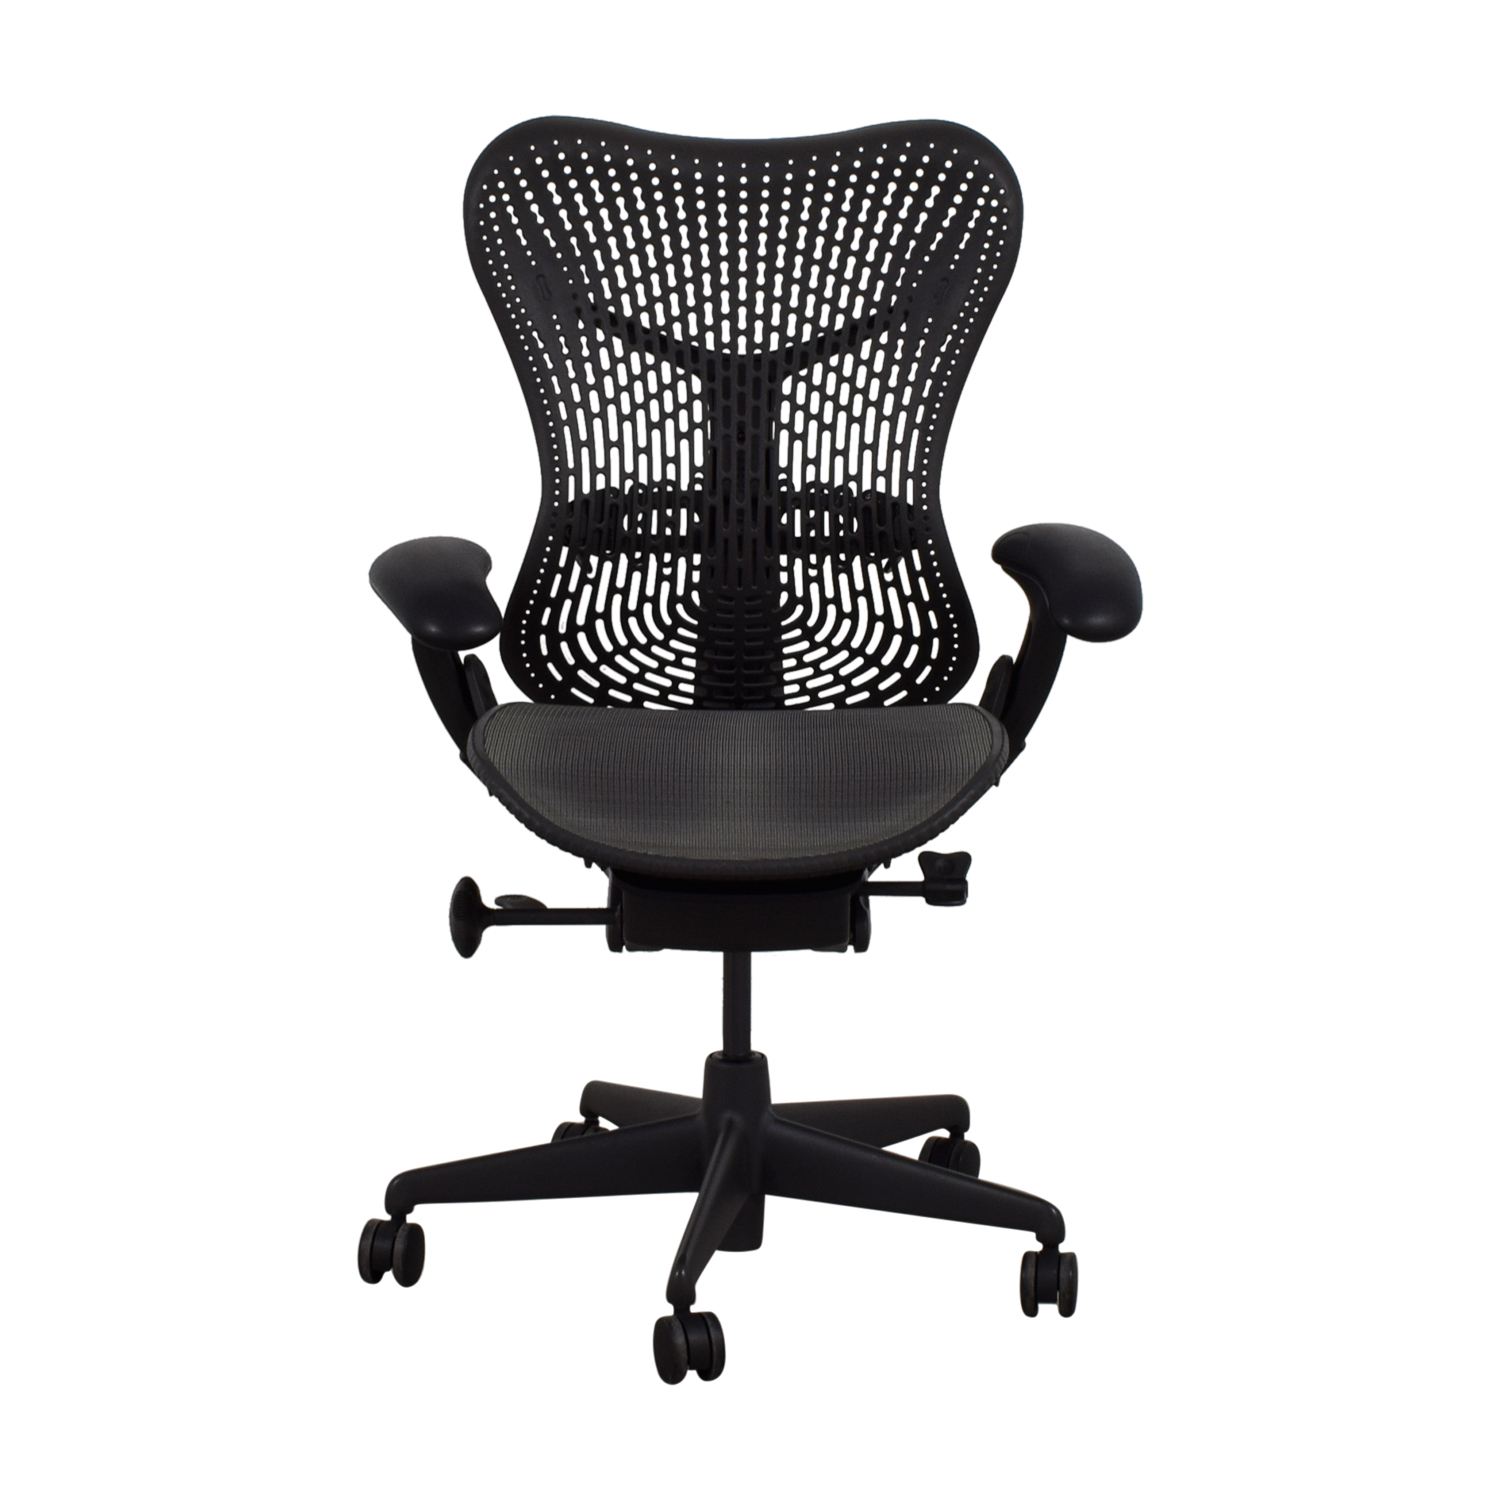 Herman Miller Herman Miller Mirra Black Chair coupon